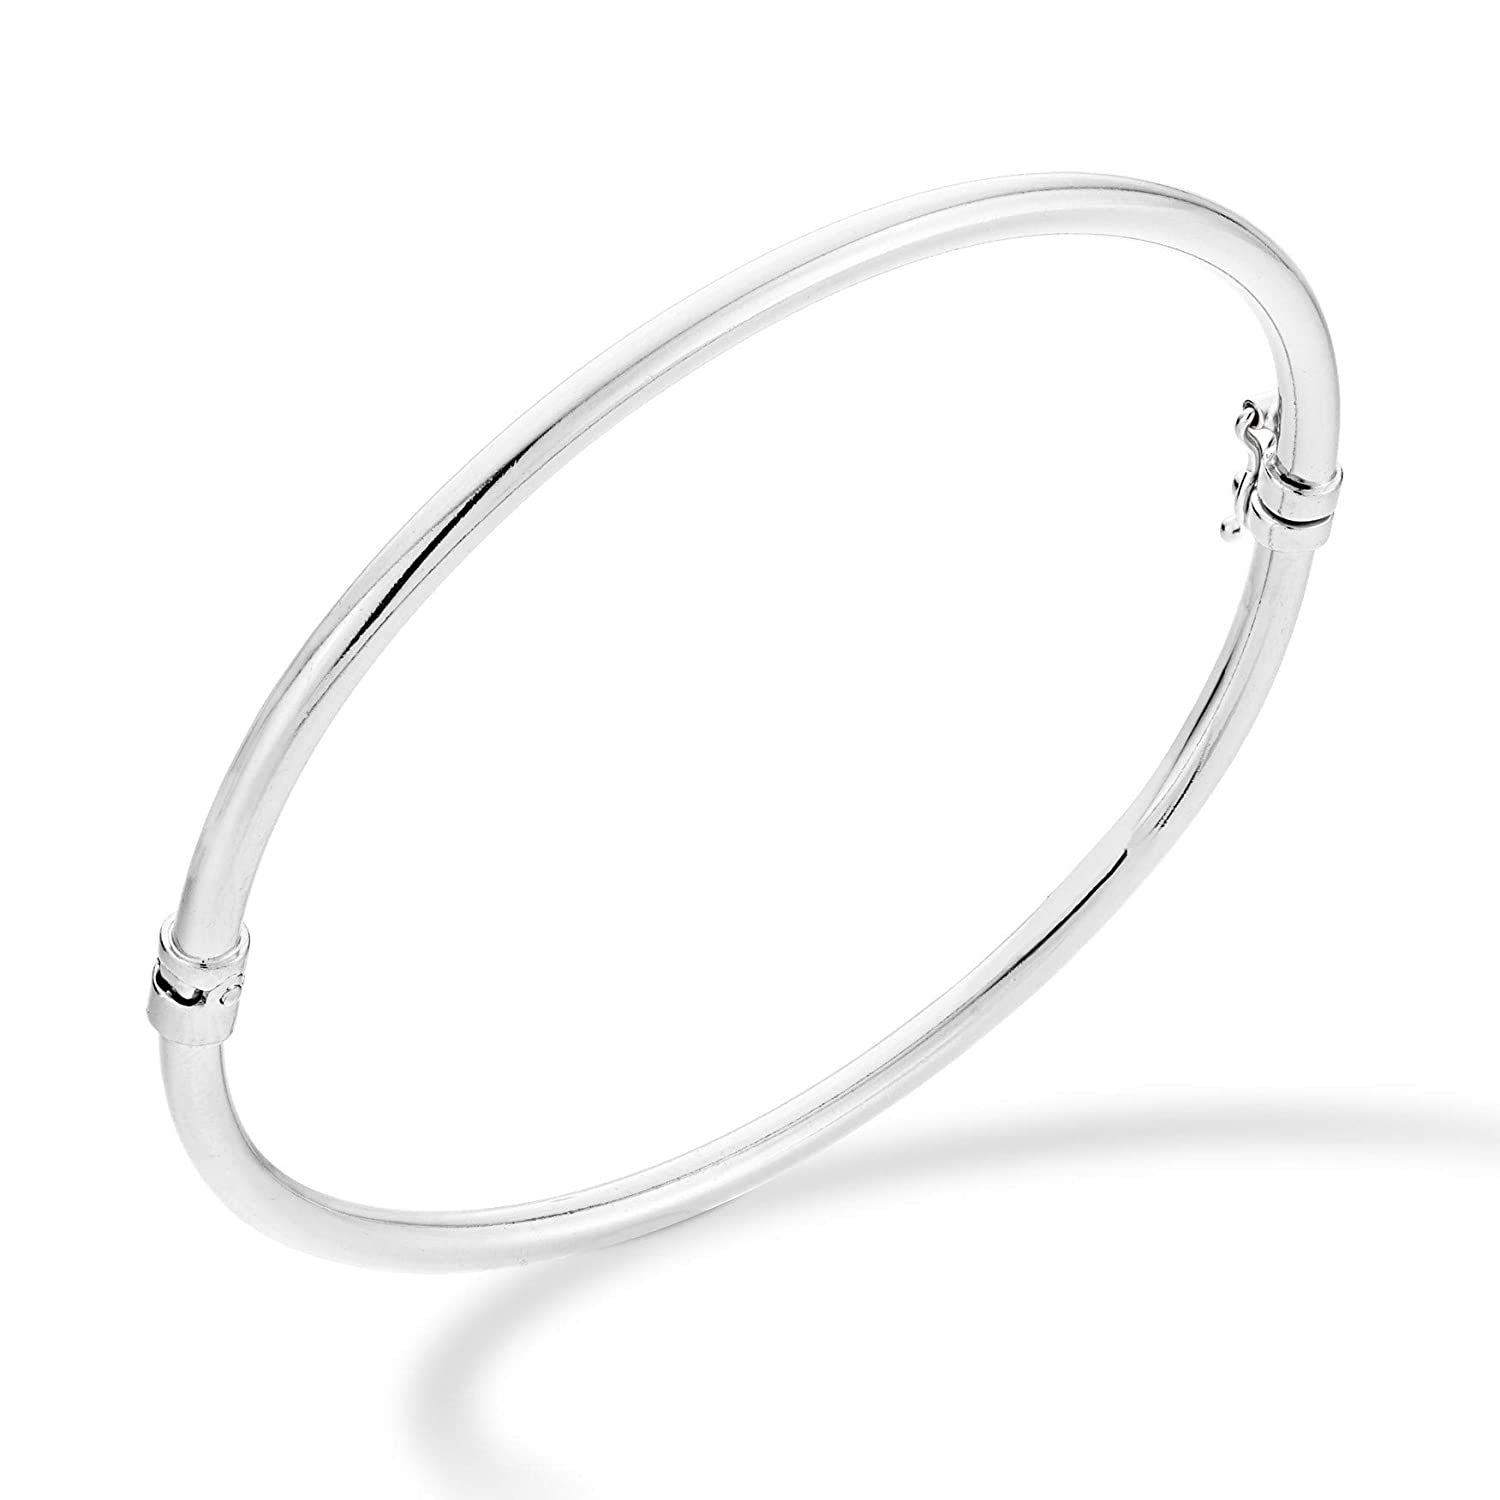 6.75 to 8 Inch Miabella 925 Sterling Silver Italian Hinged Bangle Bracelet for Women Girls Made in Italy